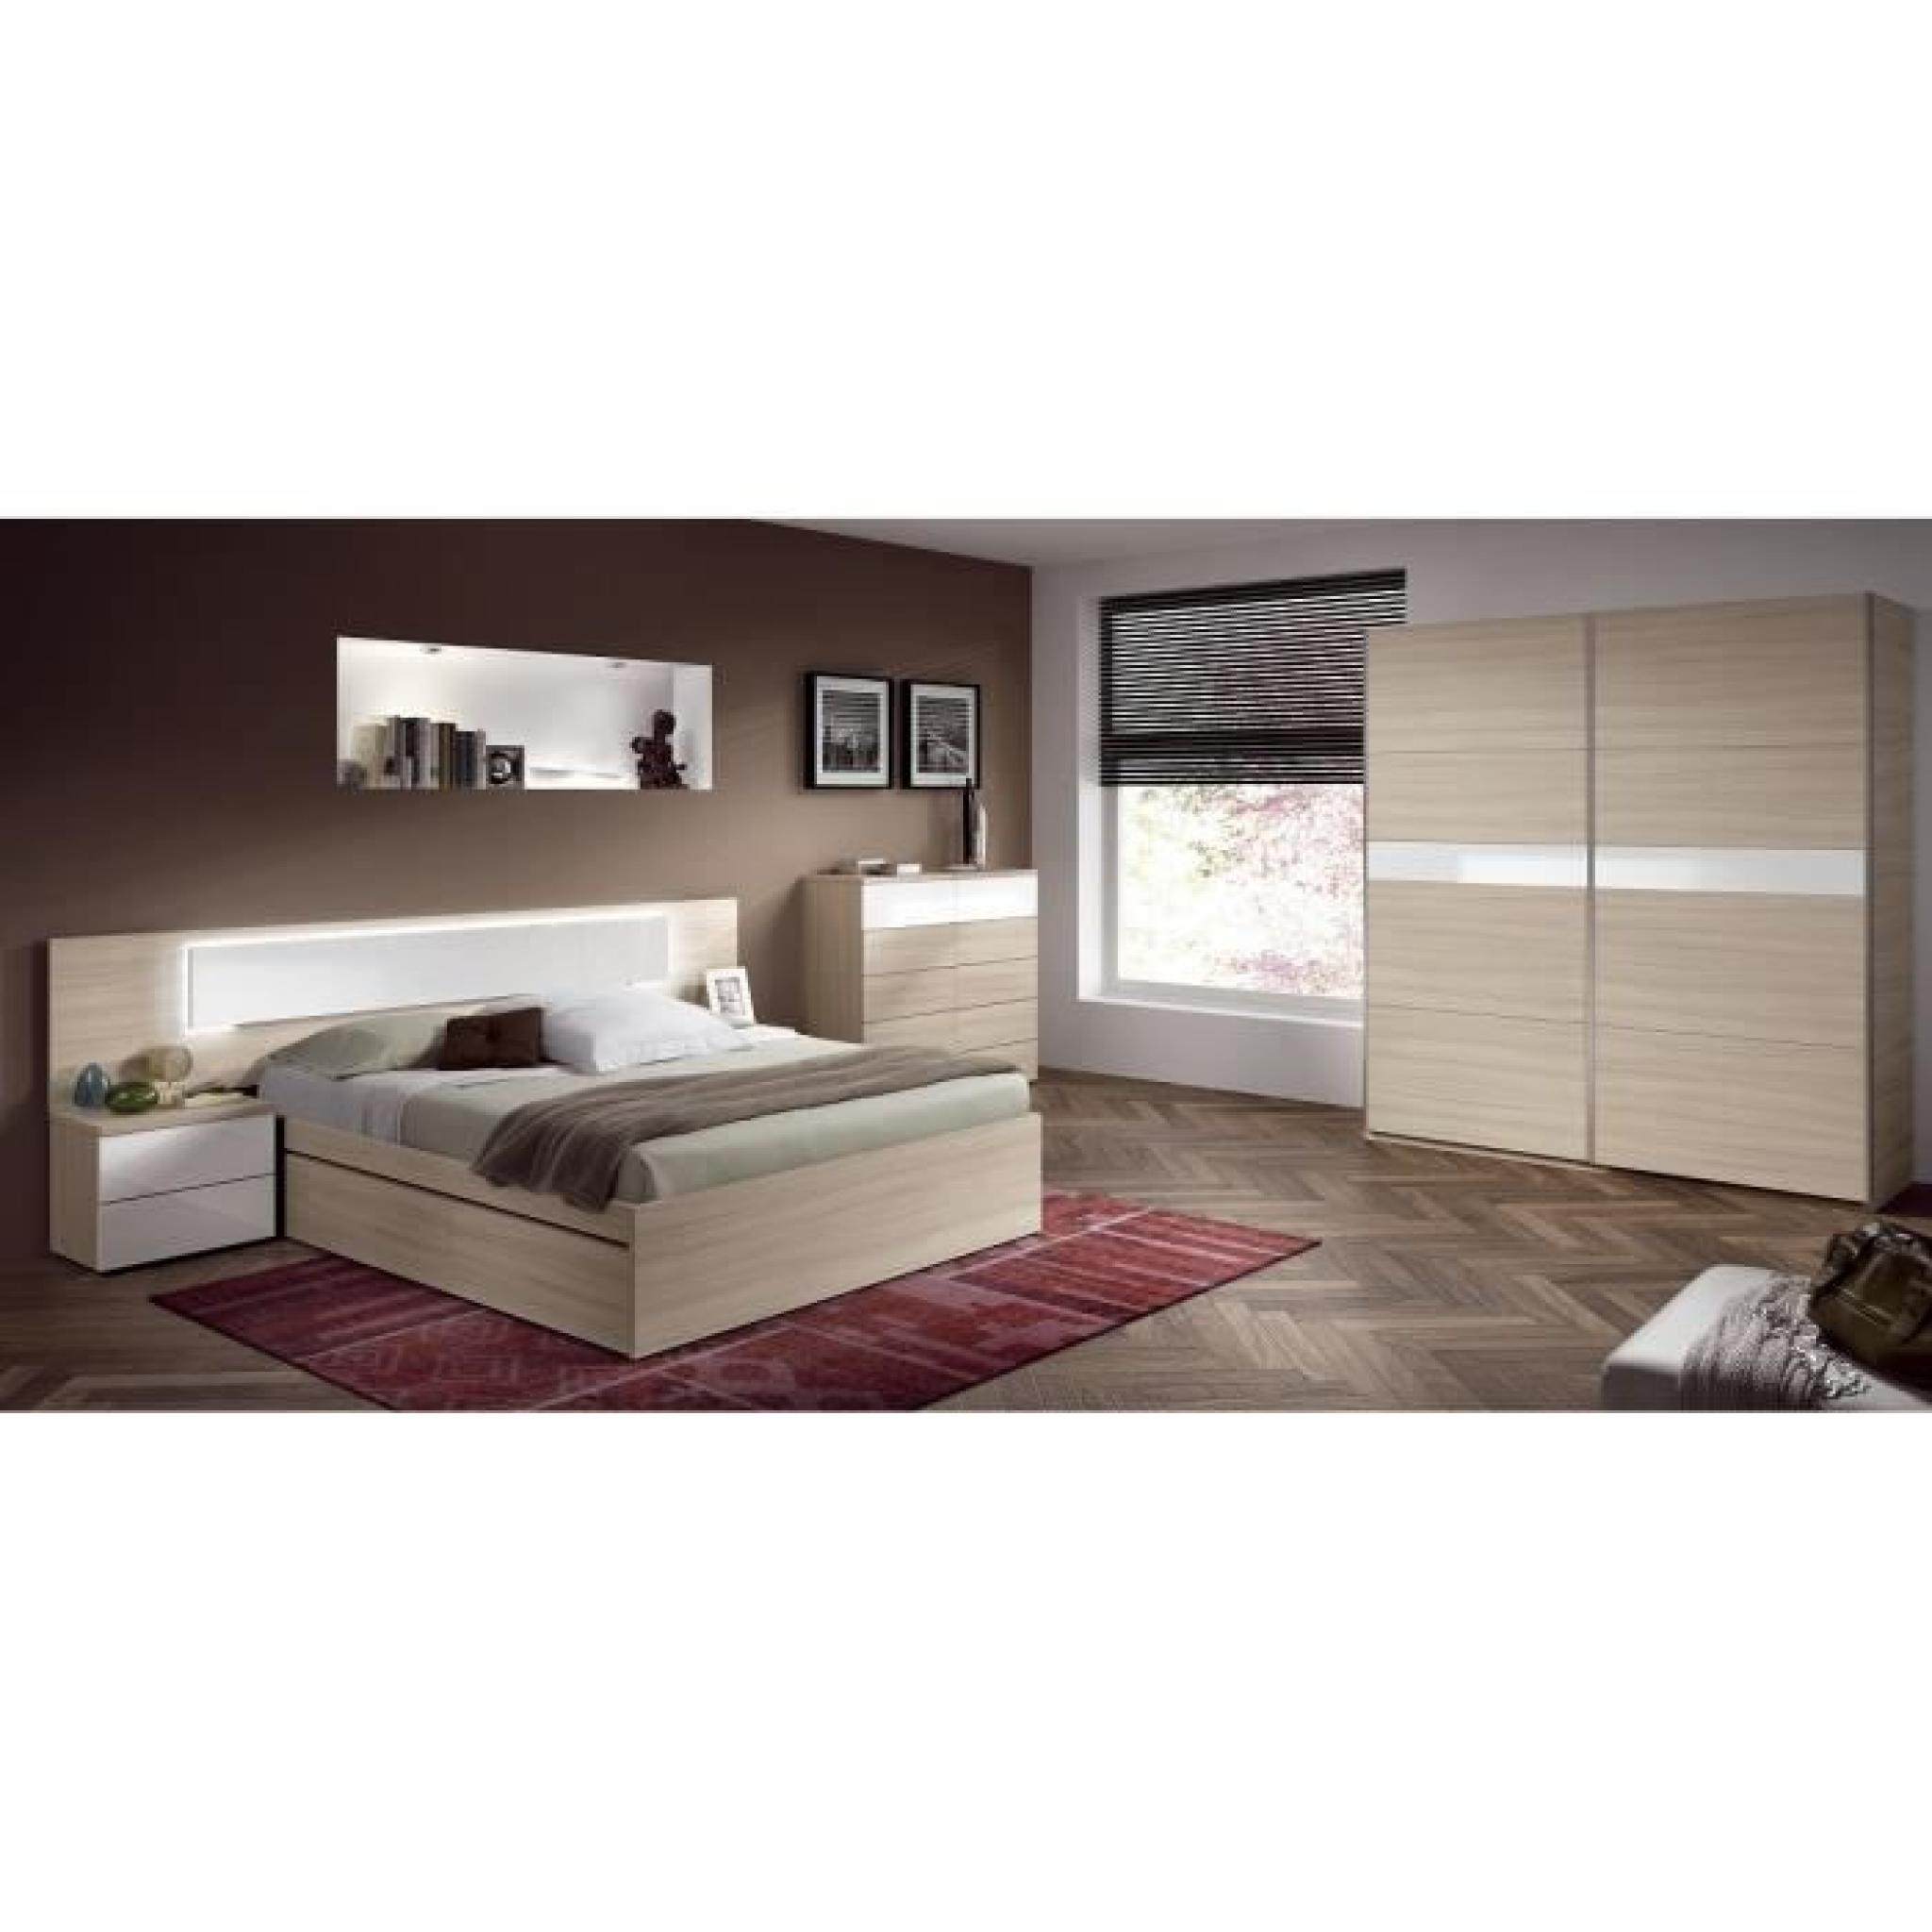 alana t te de lit avec led 263 cm 2 chevets d cor bois. Black Bedroom Furniture Sets. Home Design Ideas